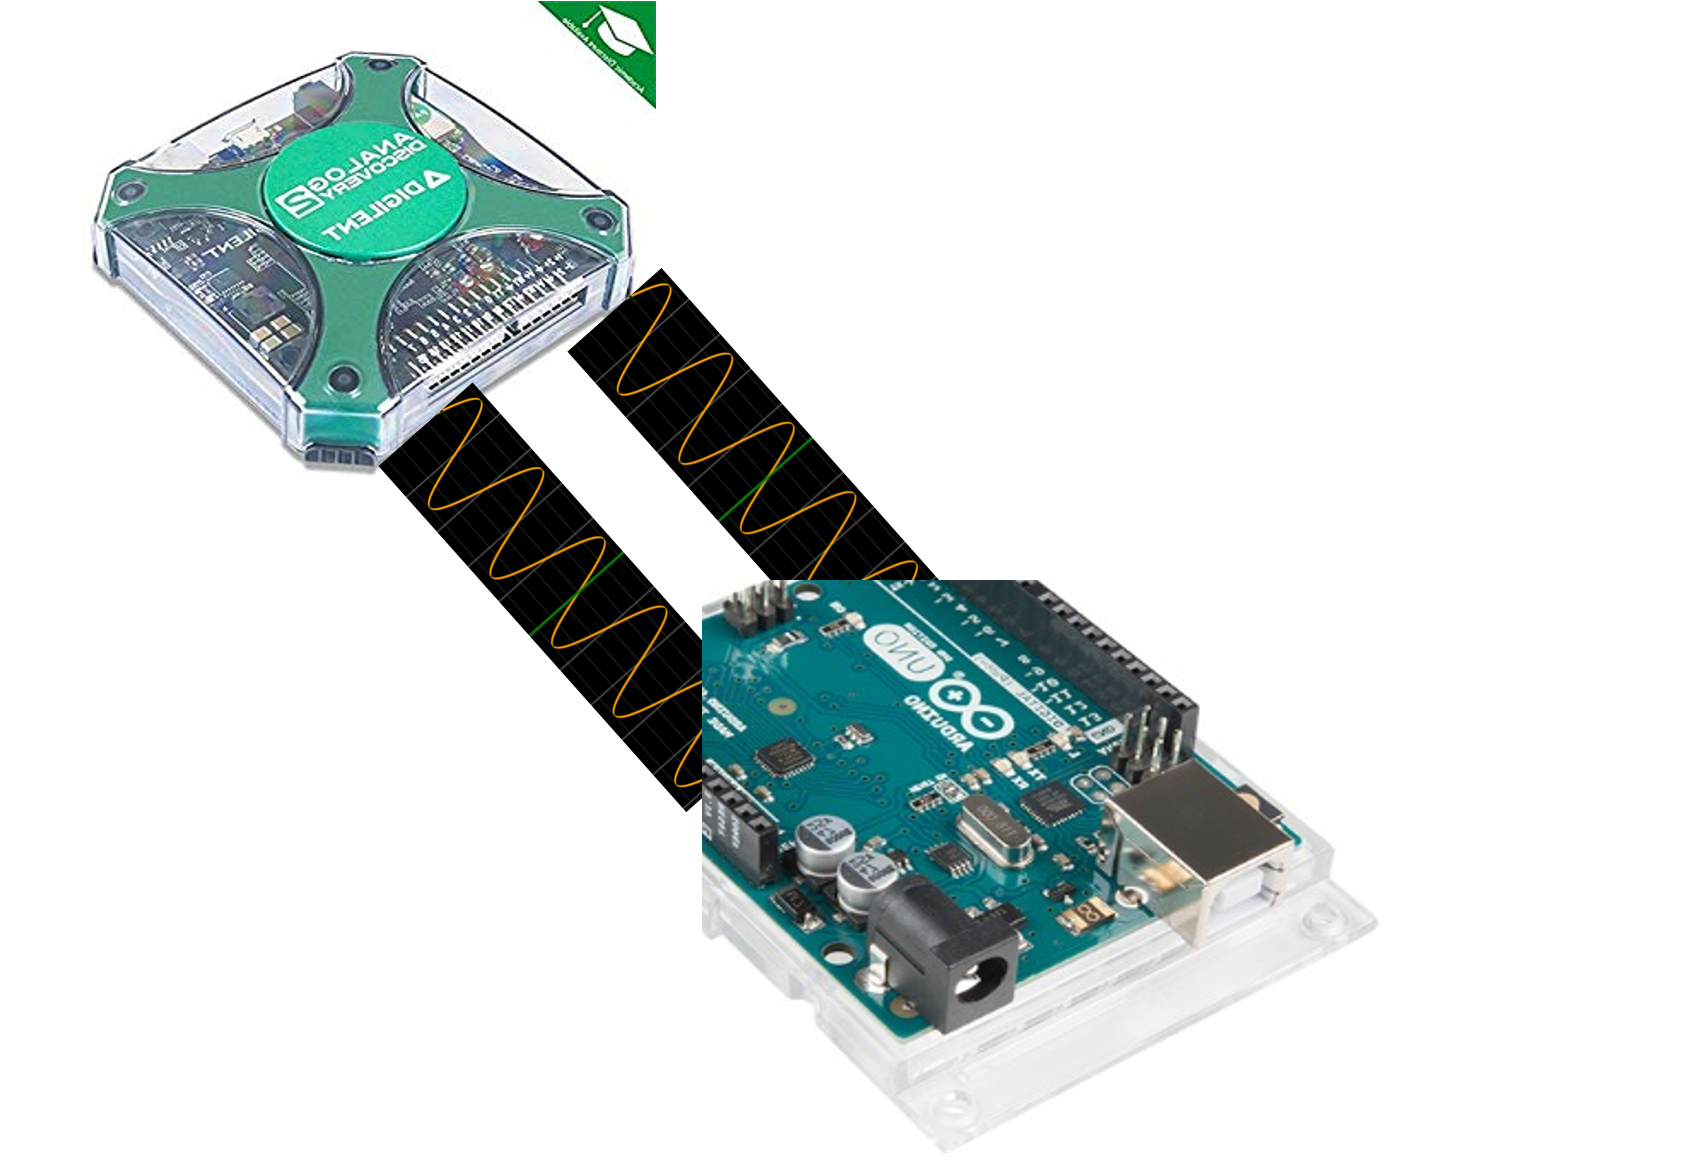 Analog Discovery 2 Communicates With Arduino Digilent Inc Blog Needed Electronics Forum Circuits Projects And Microcontrollers Recently For A Project I Was Doing Wanted To Use The Help Intelligently Interpret Live Audio Send Data Led Strips